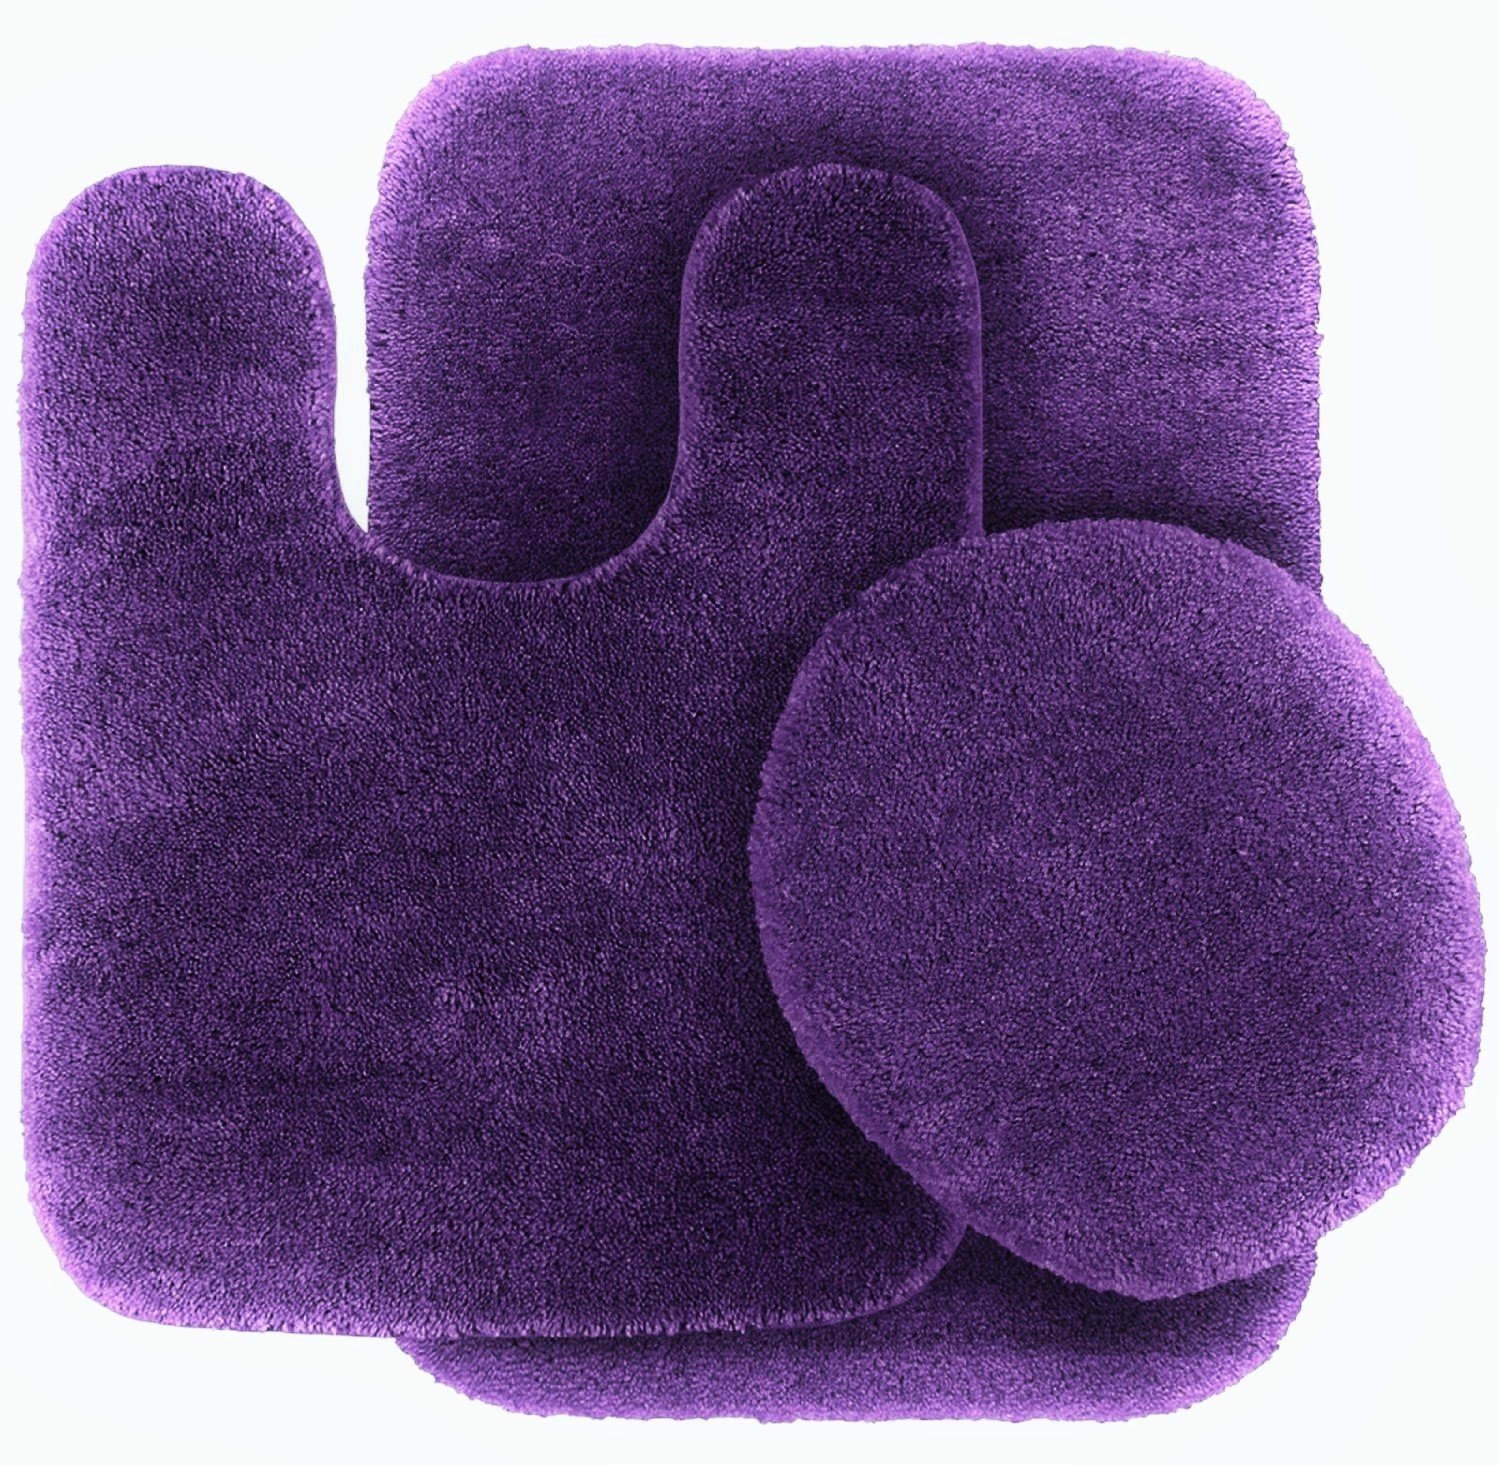 3 Pc PURPLE Bathroom Set Bath Mat RUG, Contour, and Toilet Lid Cover, with Rubber Backing #6